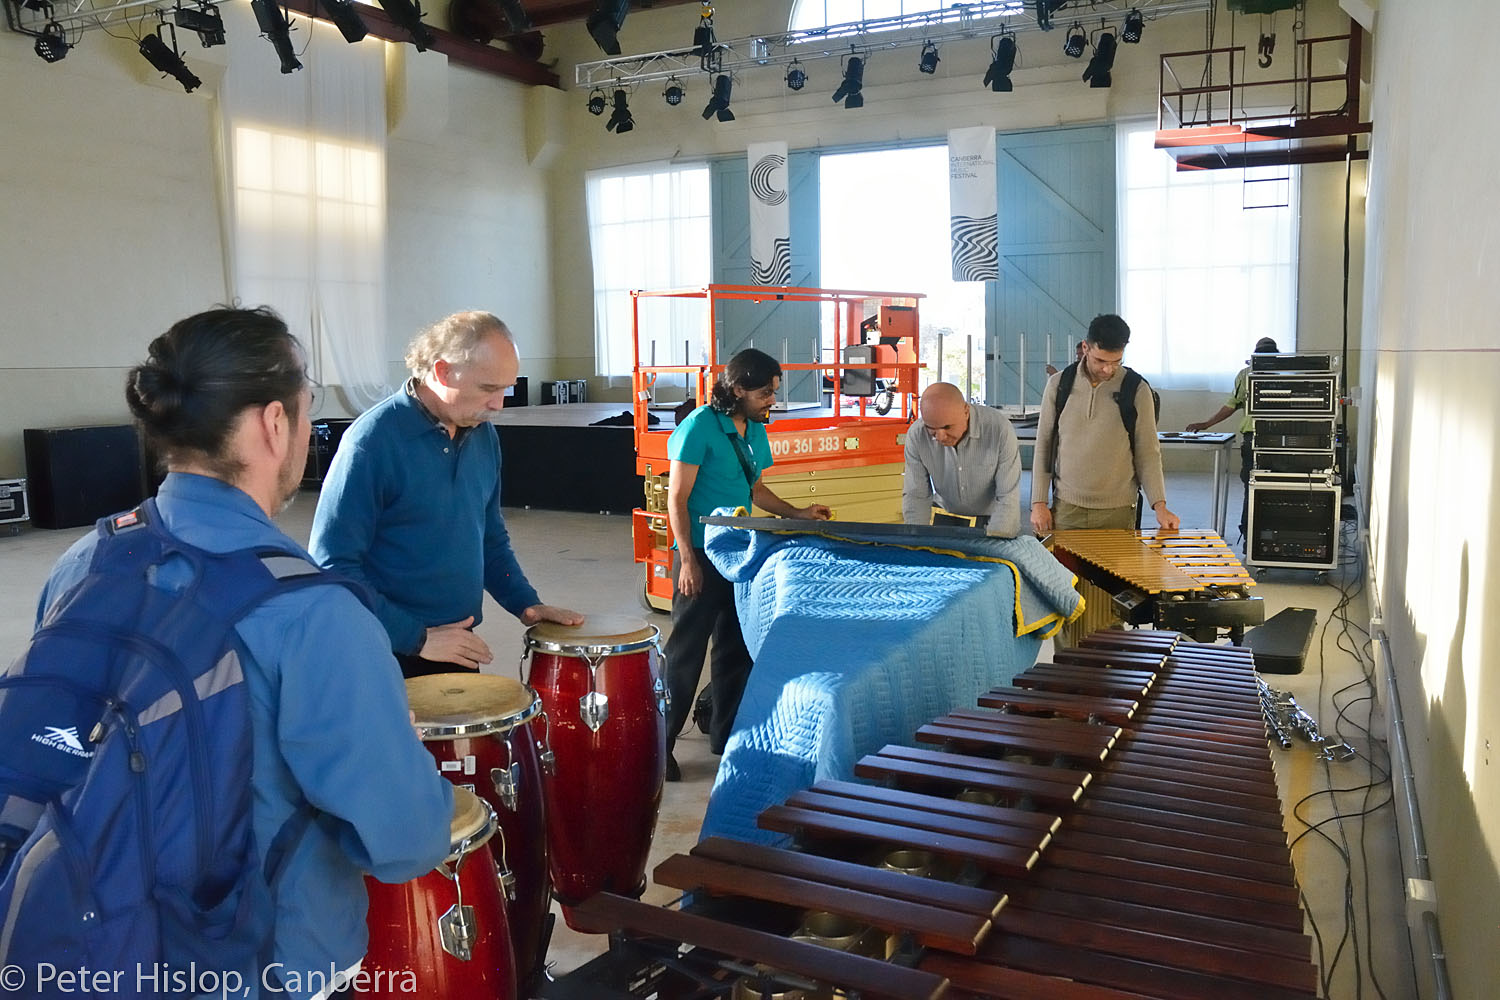 CIMF 2016 - Con 01 - Rehearsal with Tambuco Percussion. These guys got straight into practice when they arrived and were still going well after dark!